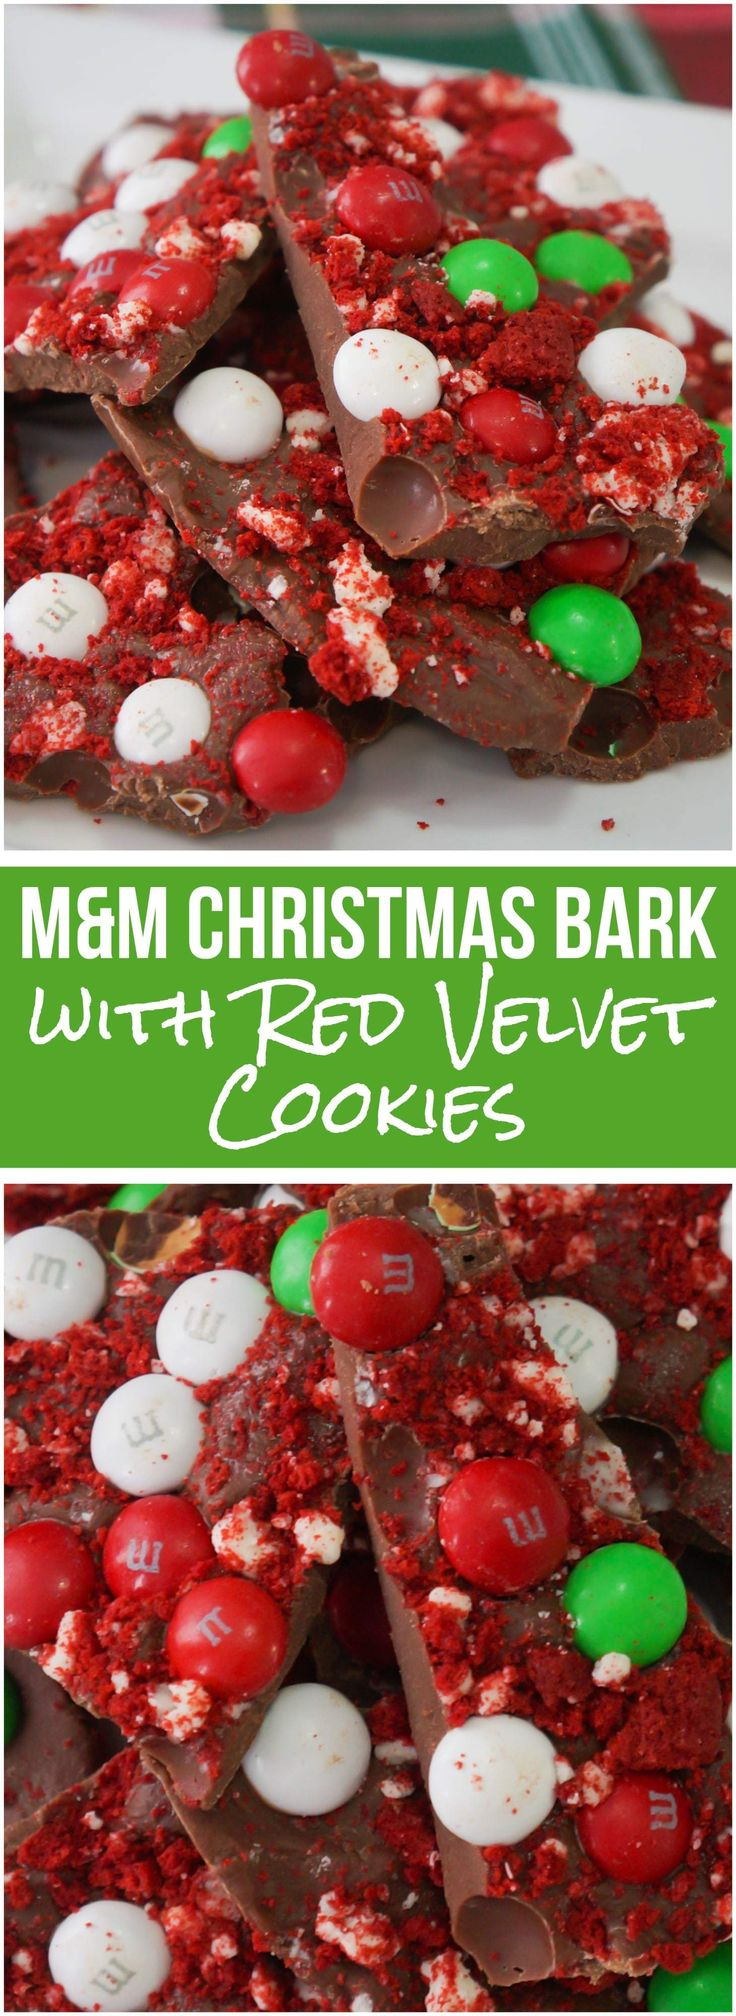 M&M Christmas Bark. This easy milk chocolate bark recipe is loaded with mint Christmas M&Ms and red velvet cookies. The perfect holiday party dessert recipe.